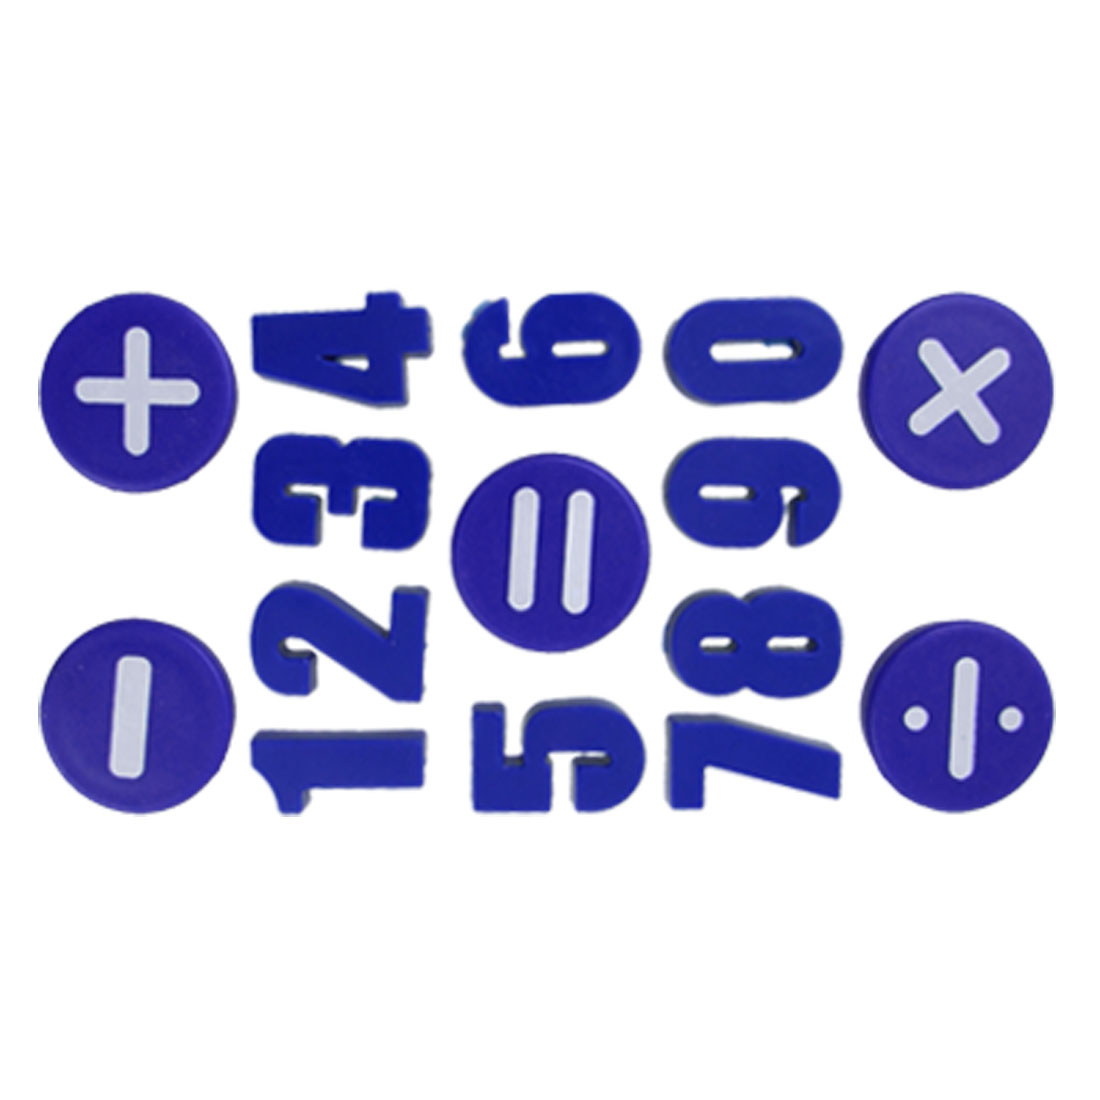 15 Pcs Kids Educational Arithmetic Sign Fridge Refrigerator Magnets Sticker